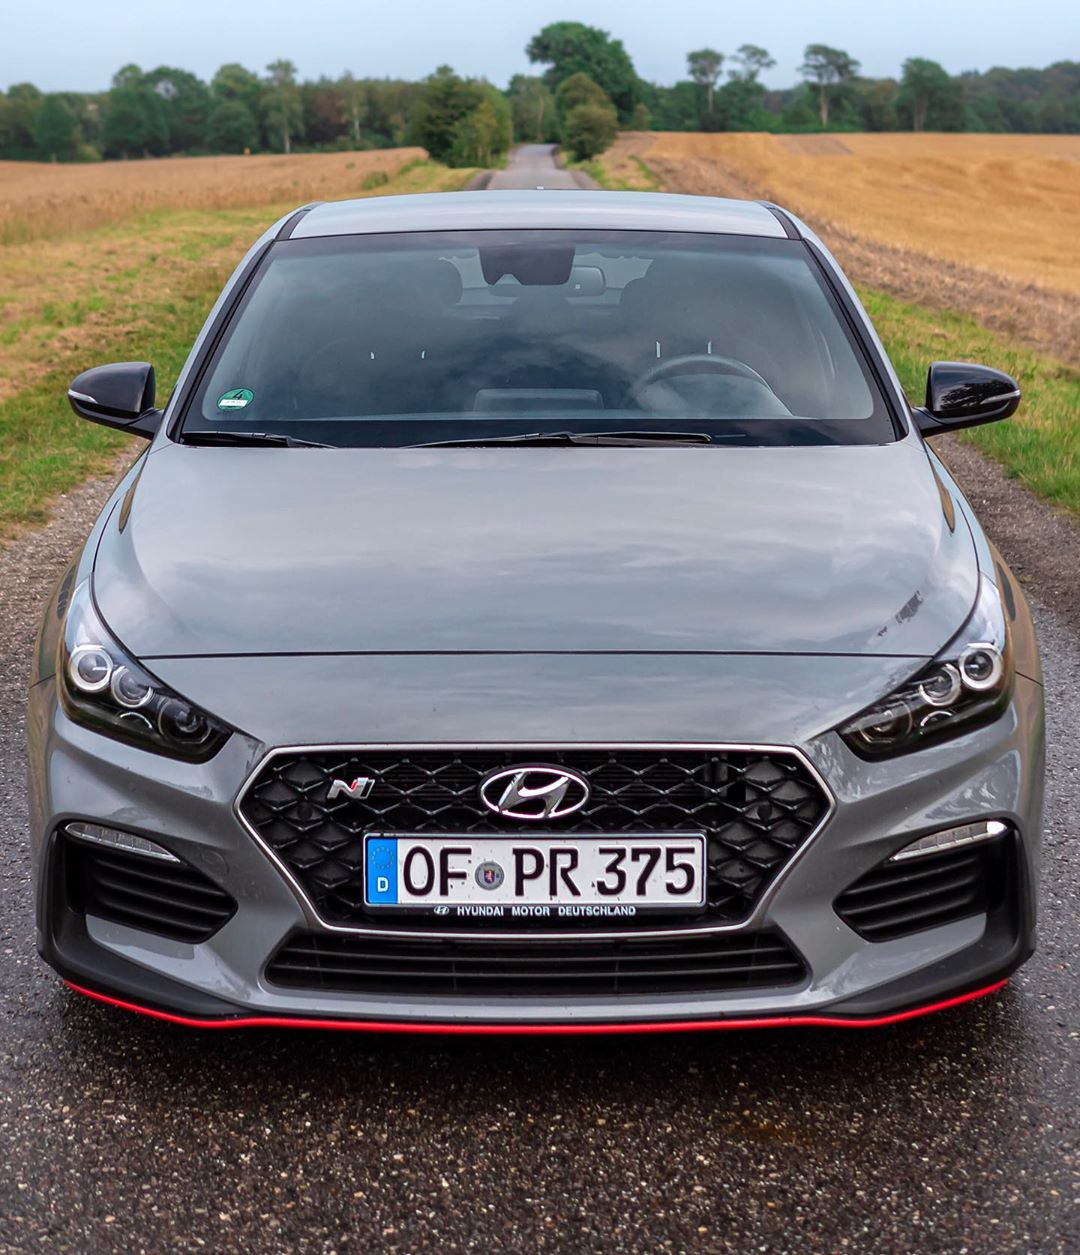 Full Drive & Sound is now finally out on YouTube🙌😬…epic SOUND of this i30 N Performance Fastback💥💨 @hyundai_n_worldwide @hyundai_de #hyundai #hyundaii30n #i30n #i30nperformance #i30nfastback #i30nfastbackperformance #hyundaii30nfastback #automanntv